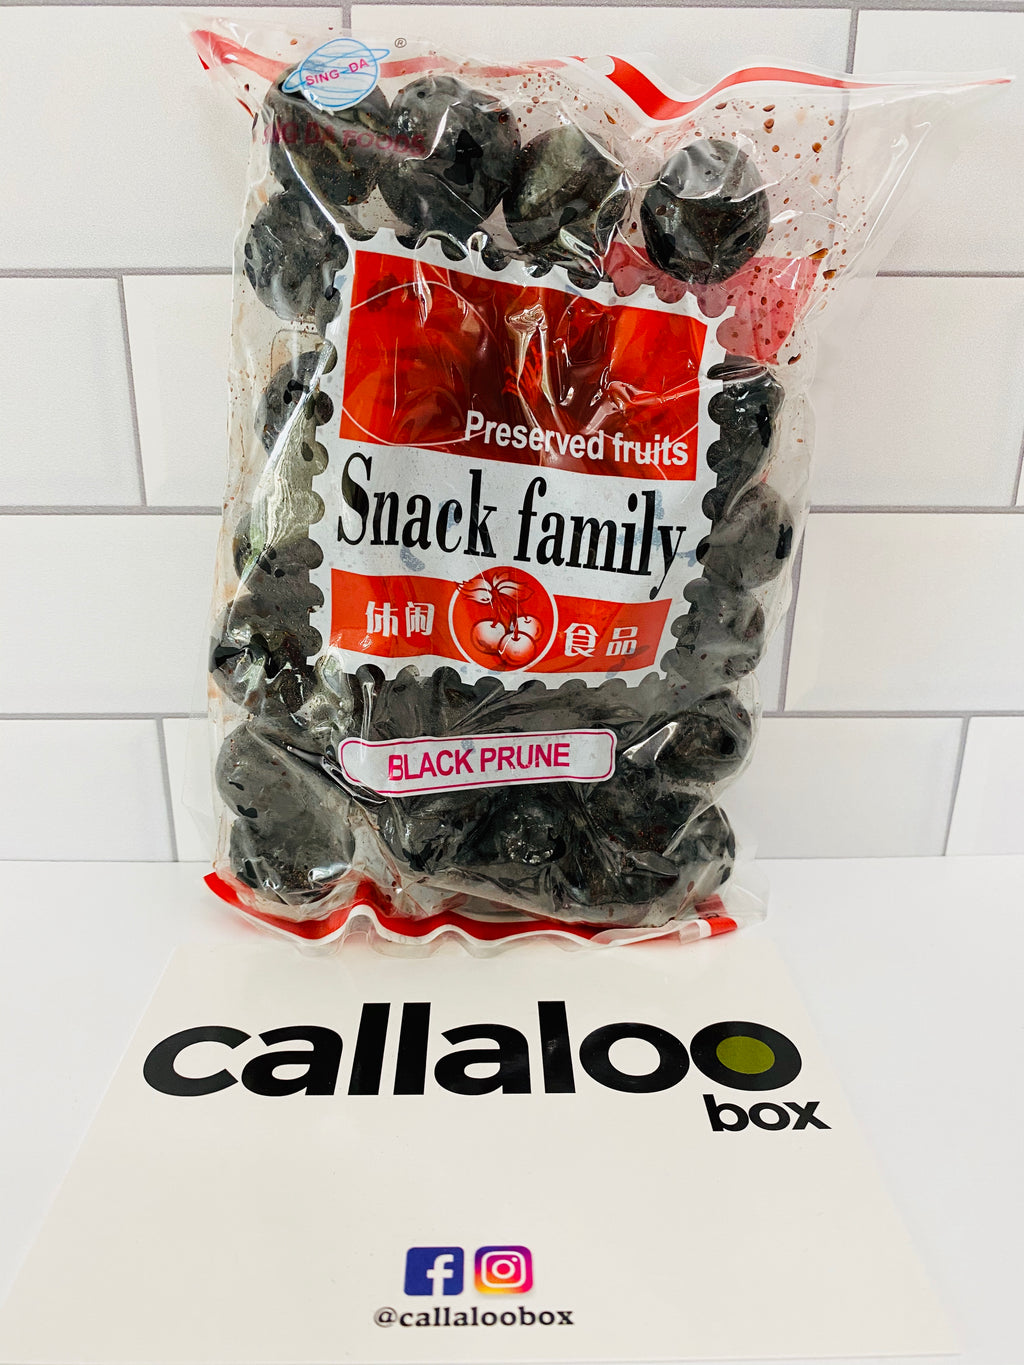 Callaloo_Box_Subscription_Box_Service_Online_Grocery_Trinidad_and_Tobago_Caribbean_Pantry_Essentials_Box_2020.05_Snack_Family_Sweet_Black_Prunes_Single